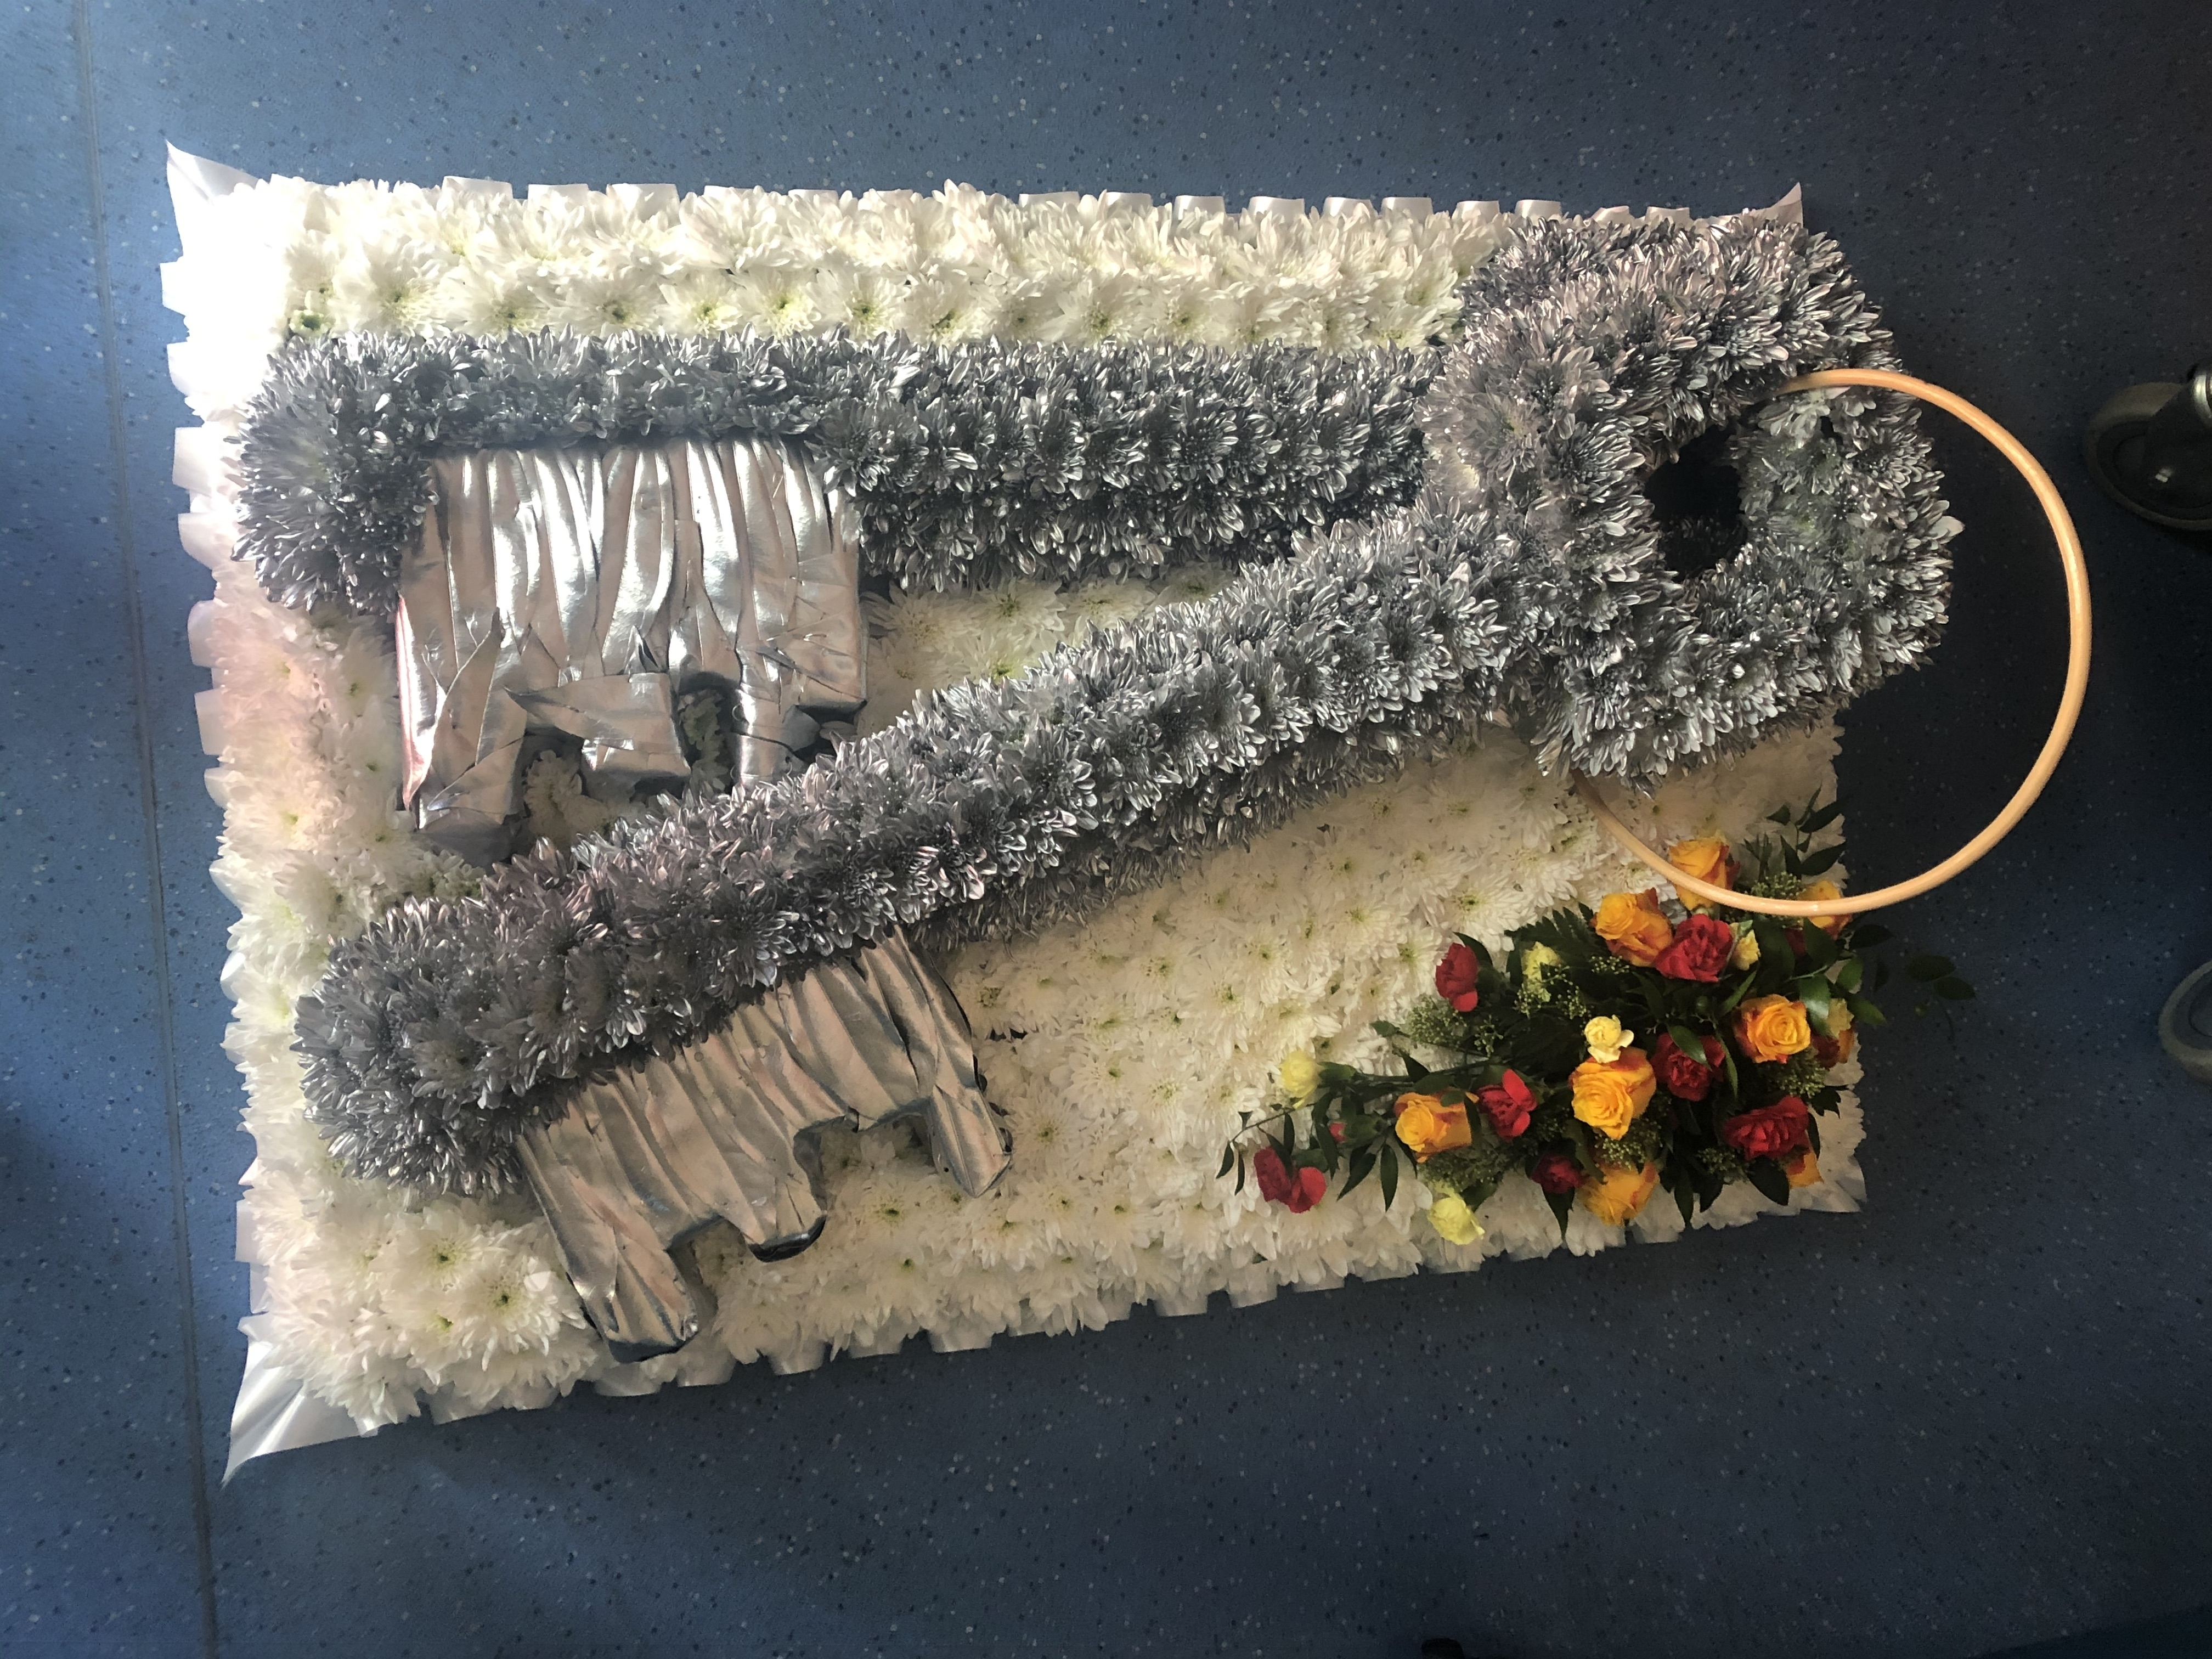 Keys made from flowers